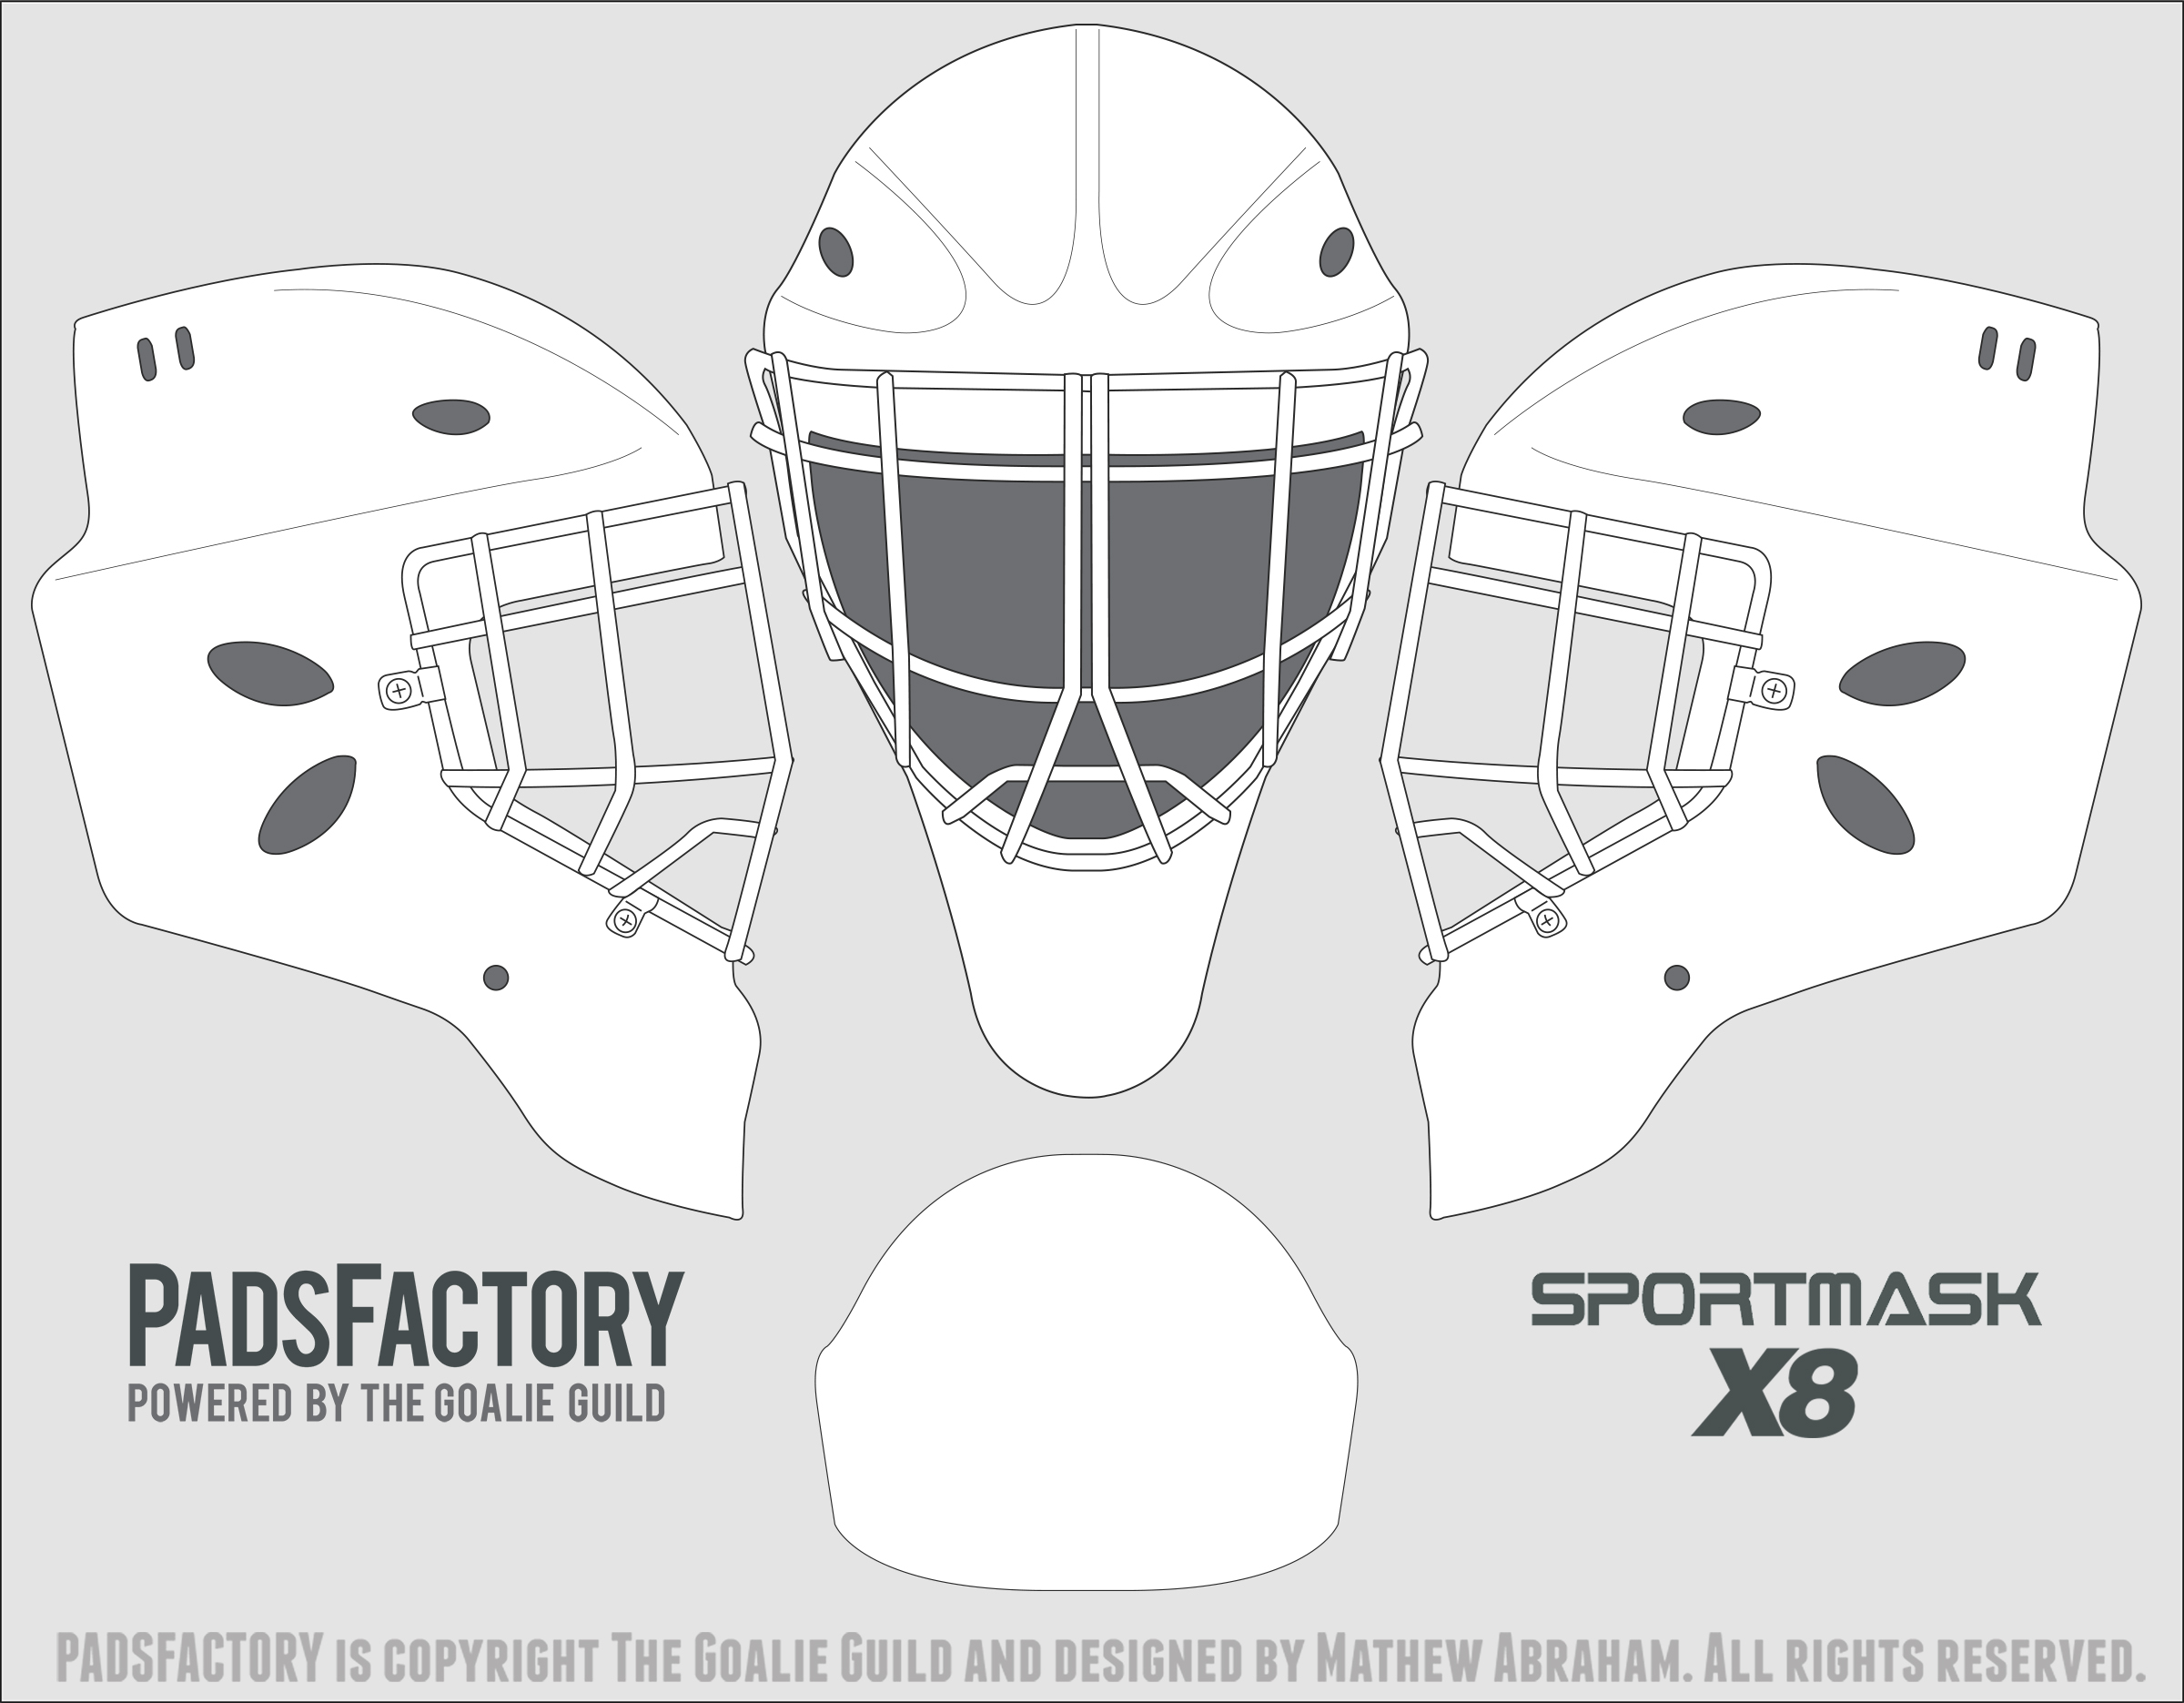 bauer goalie mask template - search results for bauer goalie mask template calendar